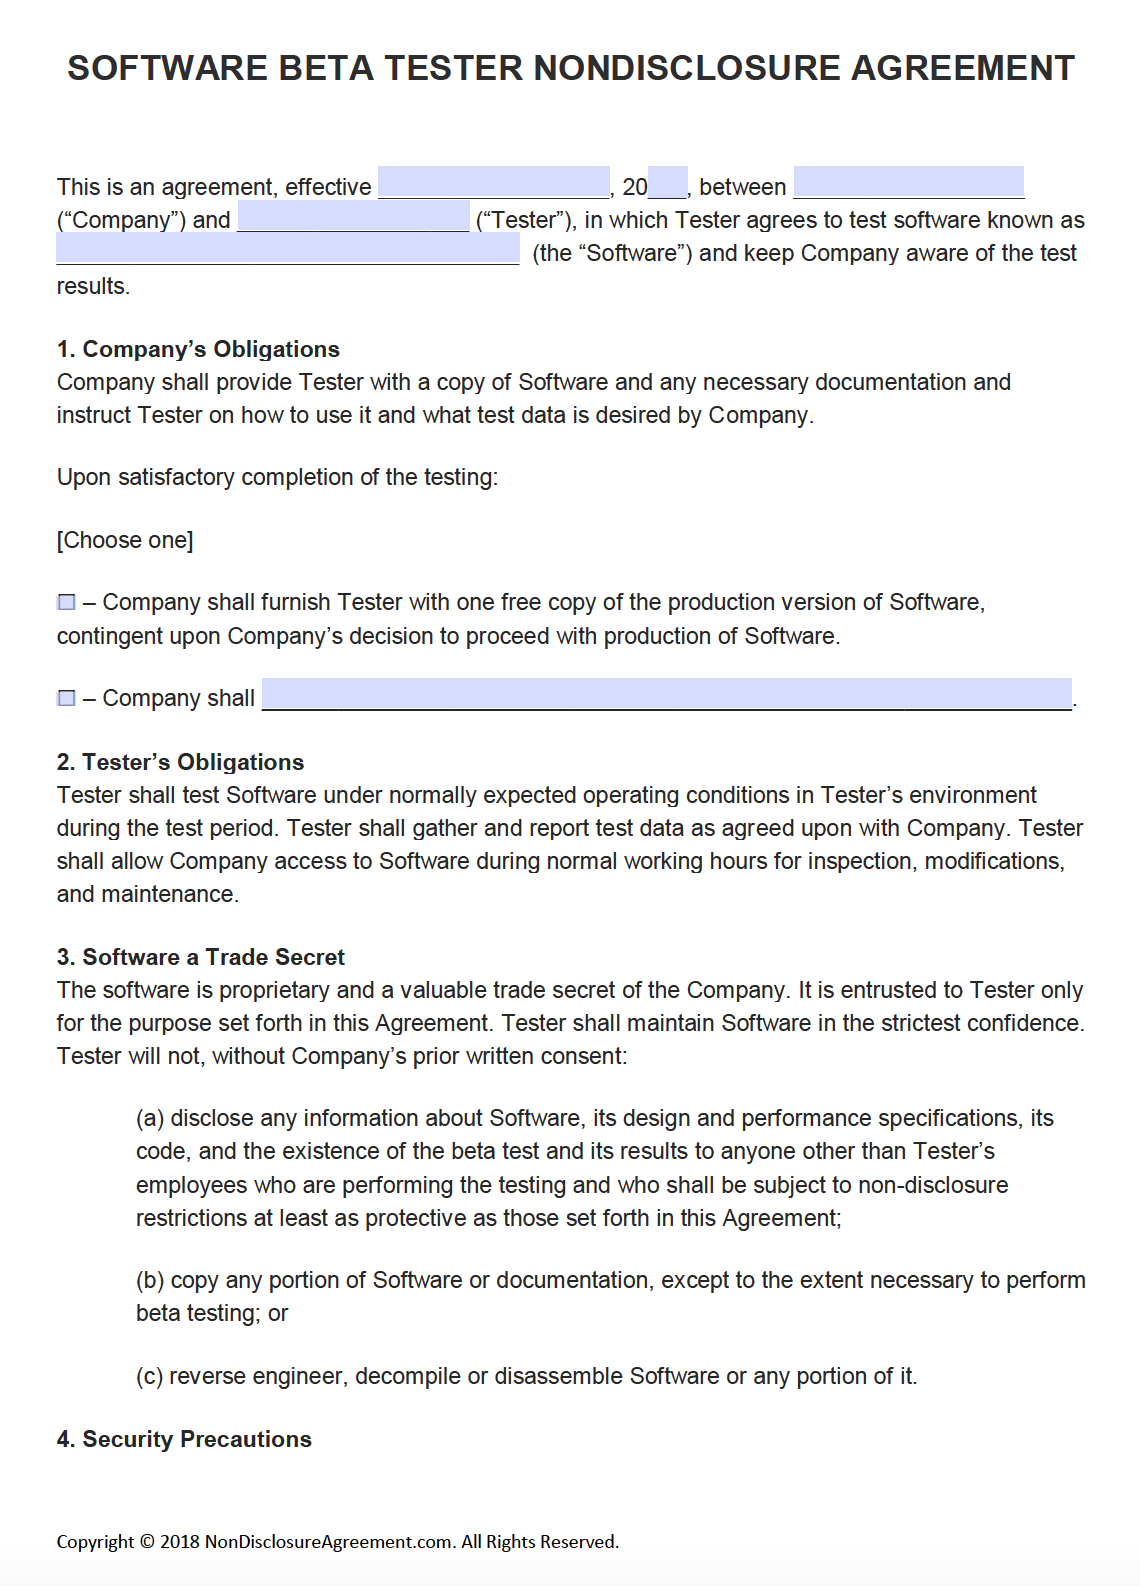 Free Software Beta Tester Nondisclosure Agreement Nda  Pdf With Pilot Test Agreement Template